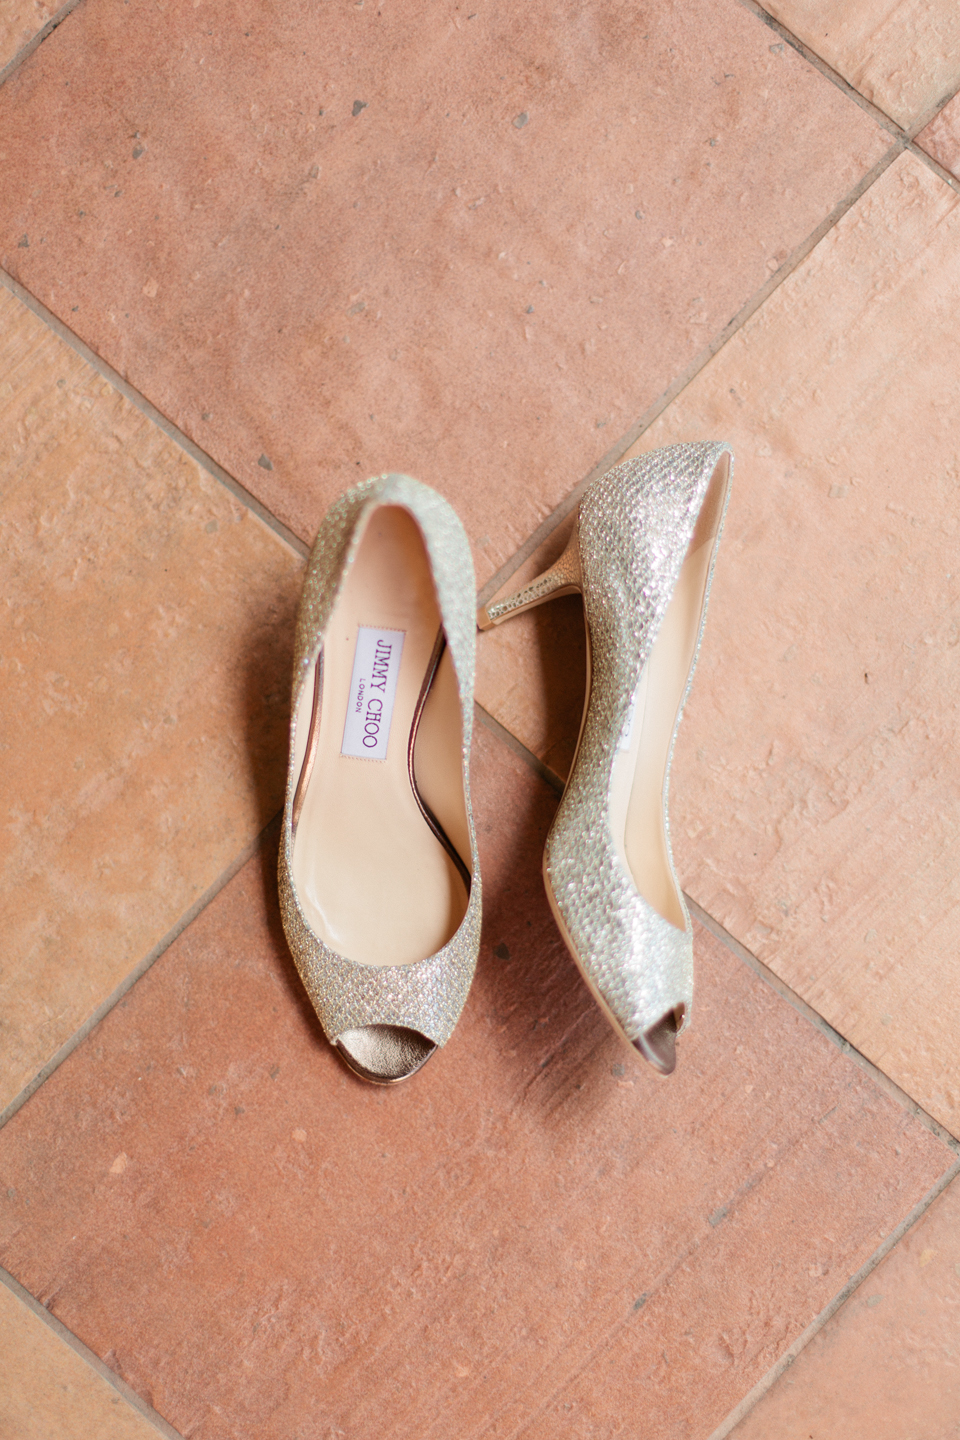 Picture of Jimmy Choo bridal heels laying on terracotta tile flooring.  This is at the TPC Sawgrass in Ponte Vedra, Florida